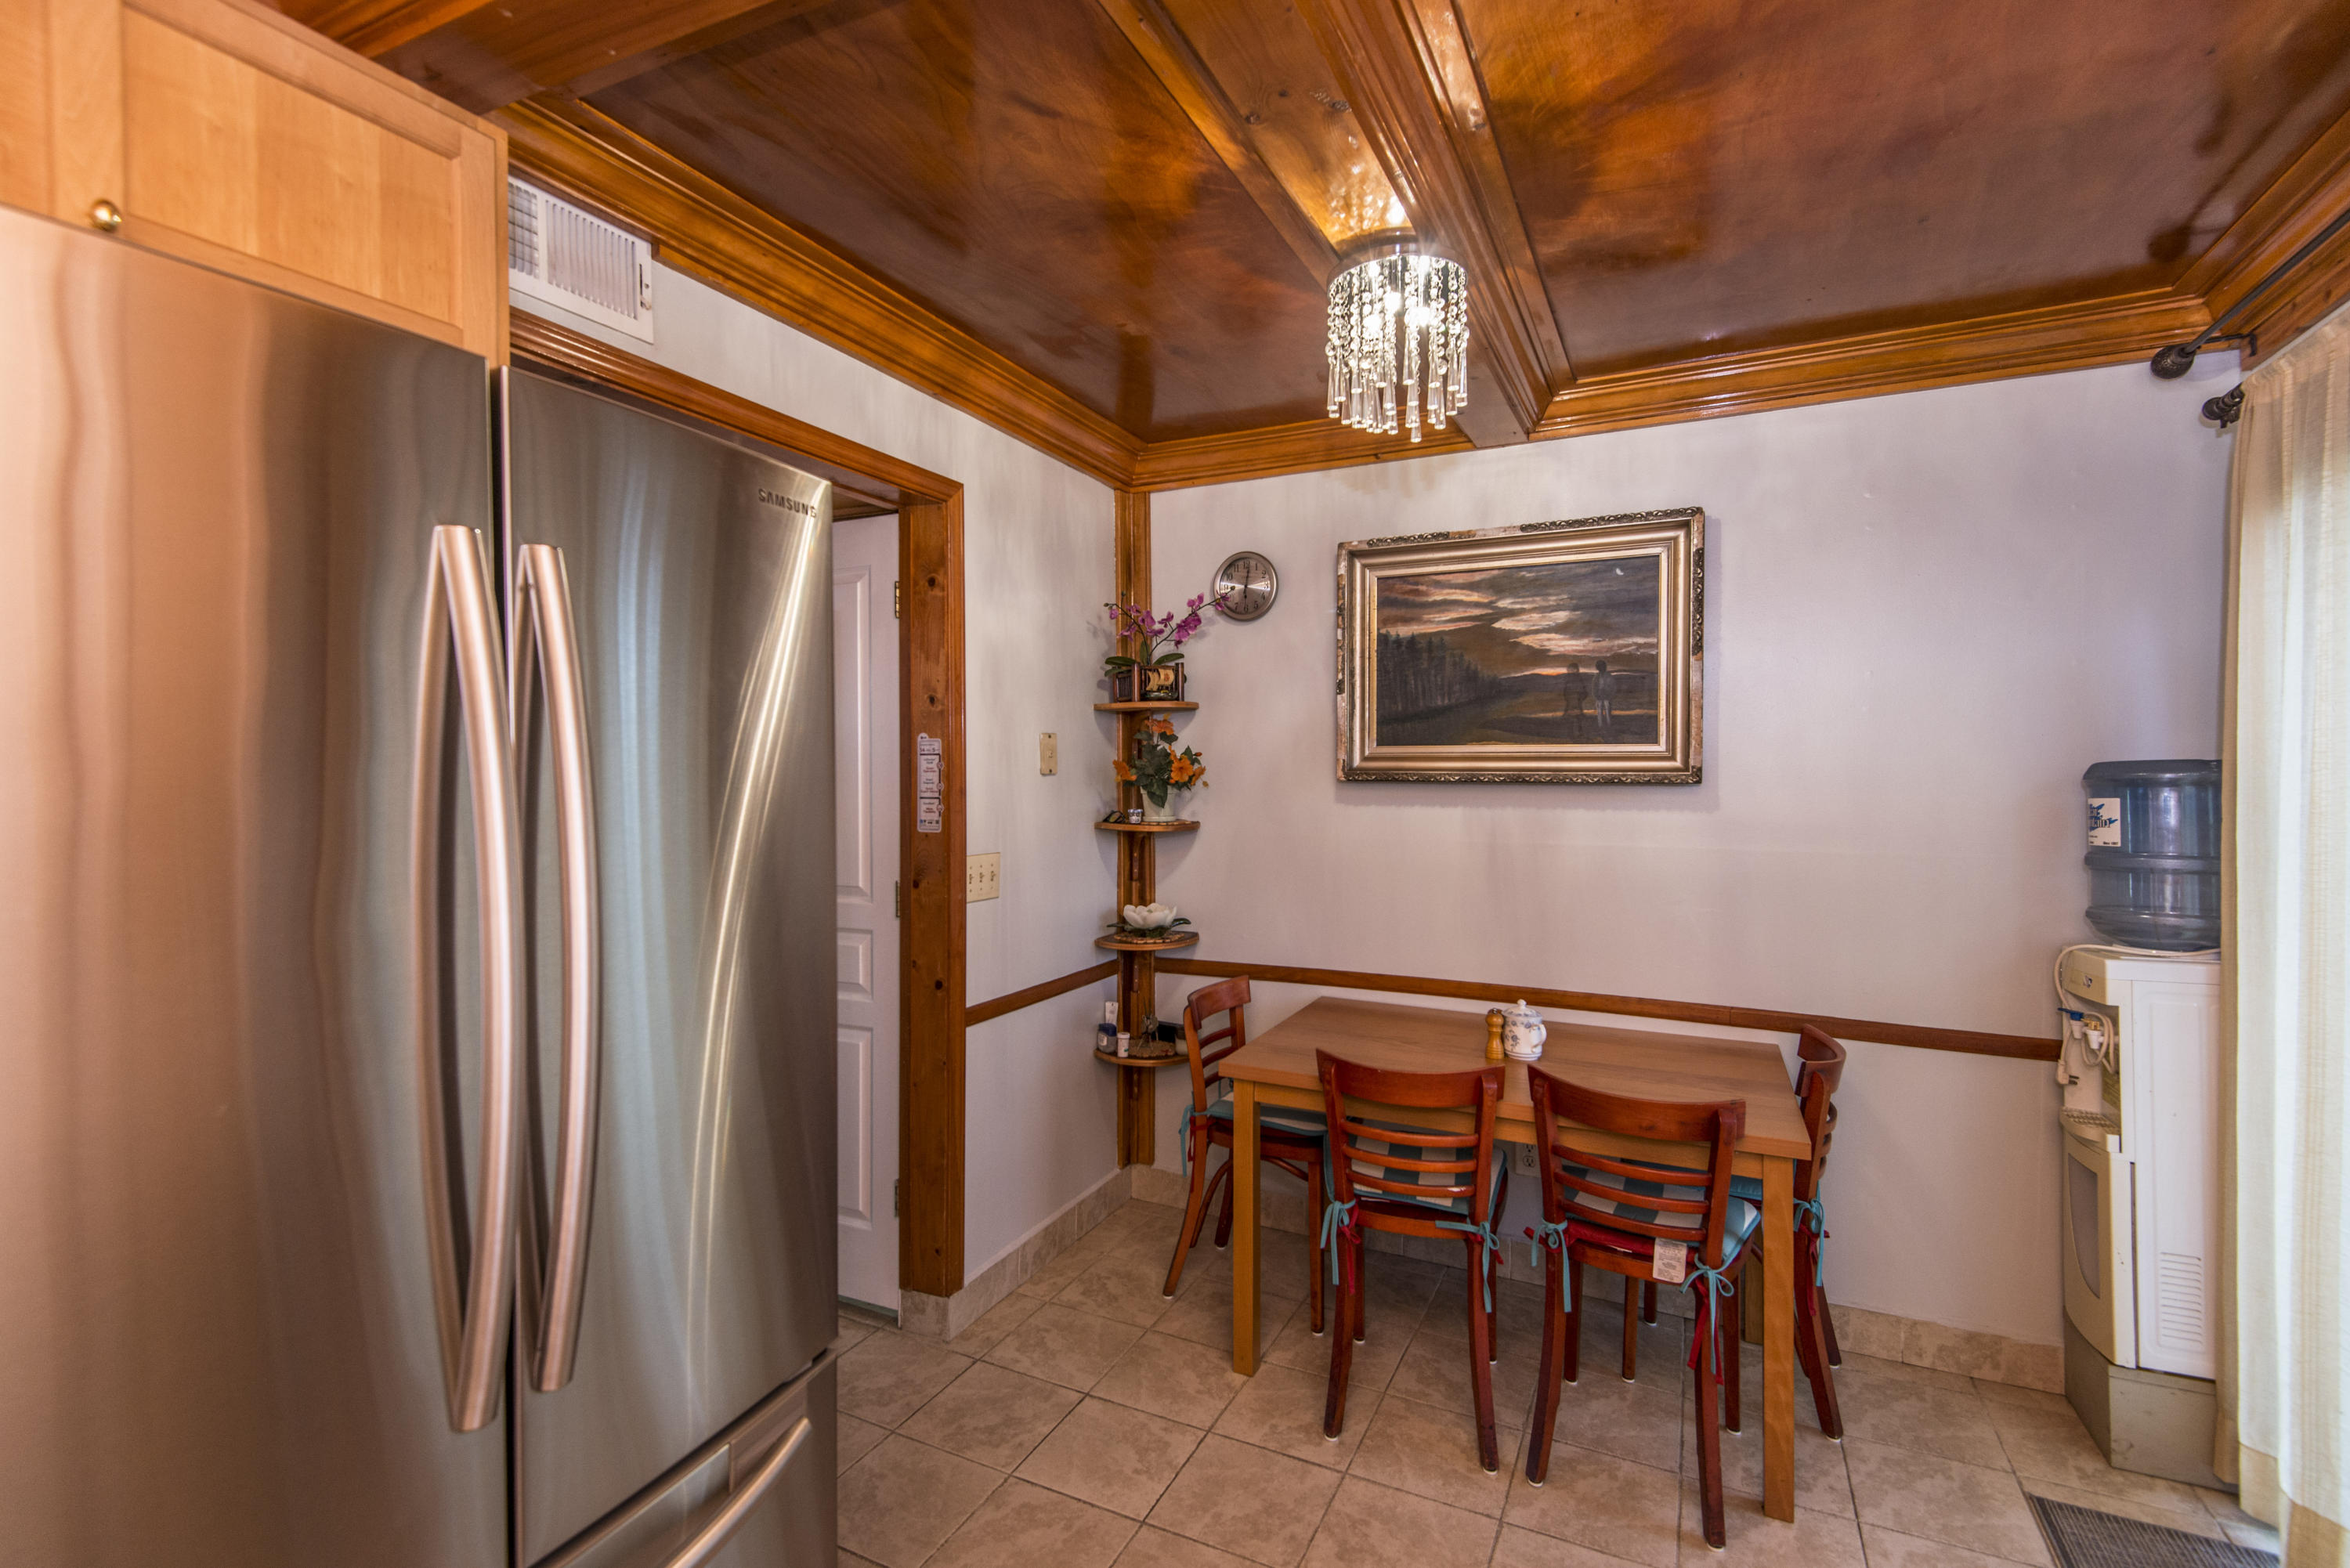 Rivers Point Row Homes For Sale - 21 Rivers Point Row, Charleston, SC - 5